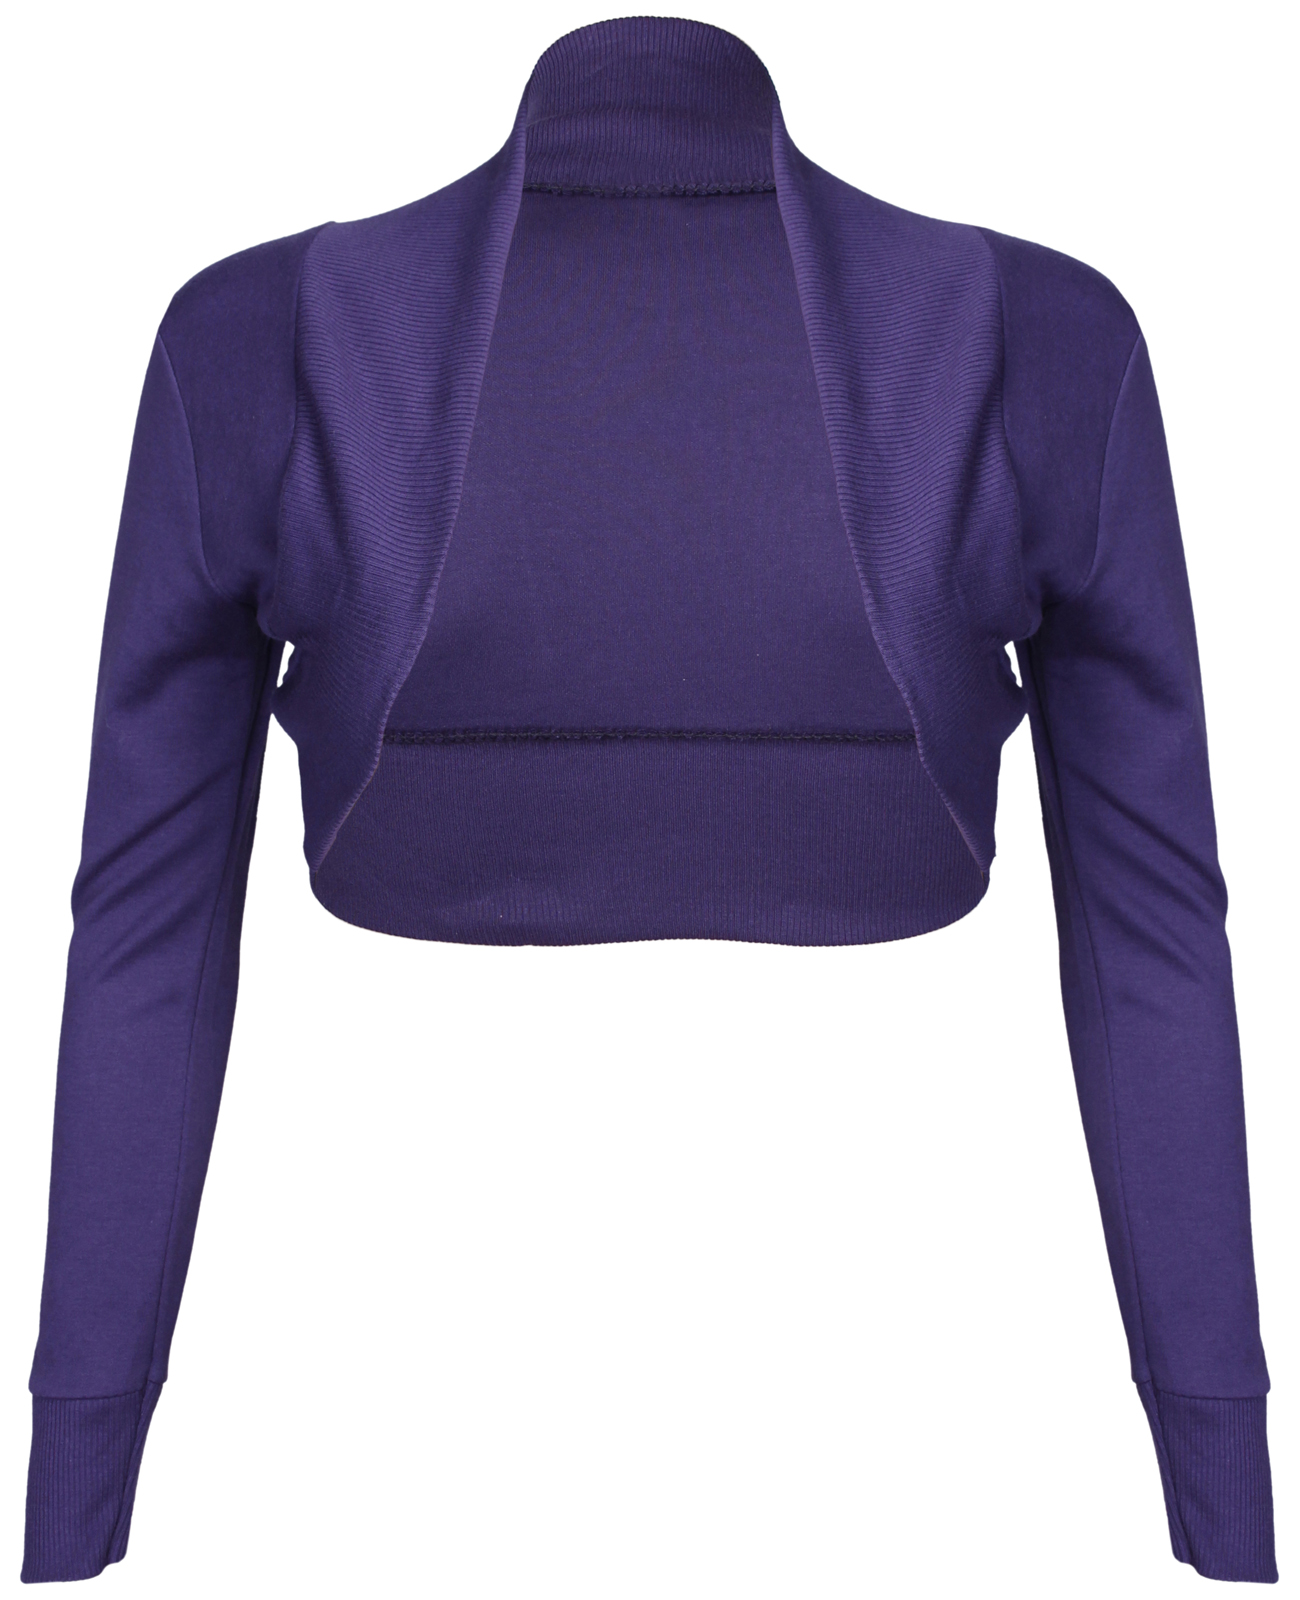 NEW-LADIES-LONG-SLEEVE-STRETCH-BOLERO-SHRUG-WOMENS-TOP thumbnail 18